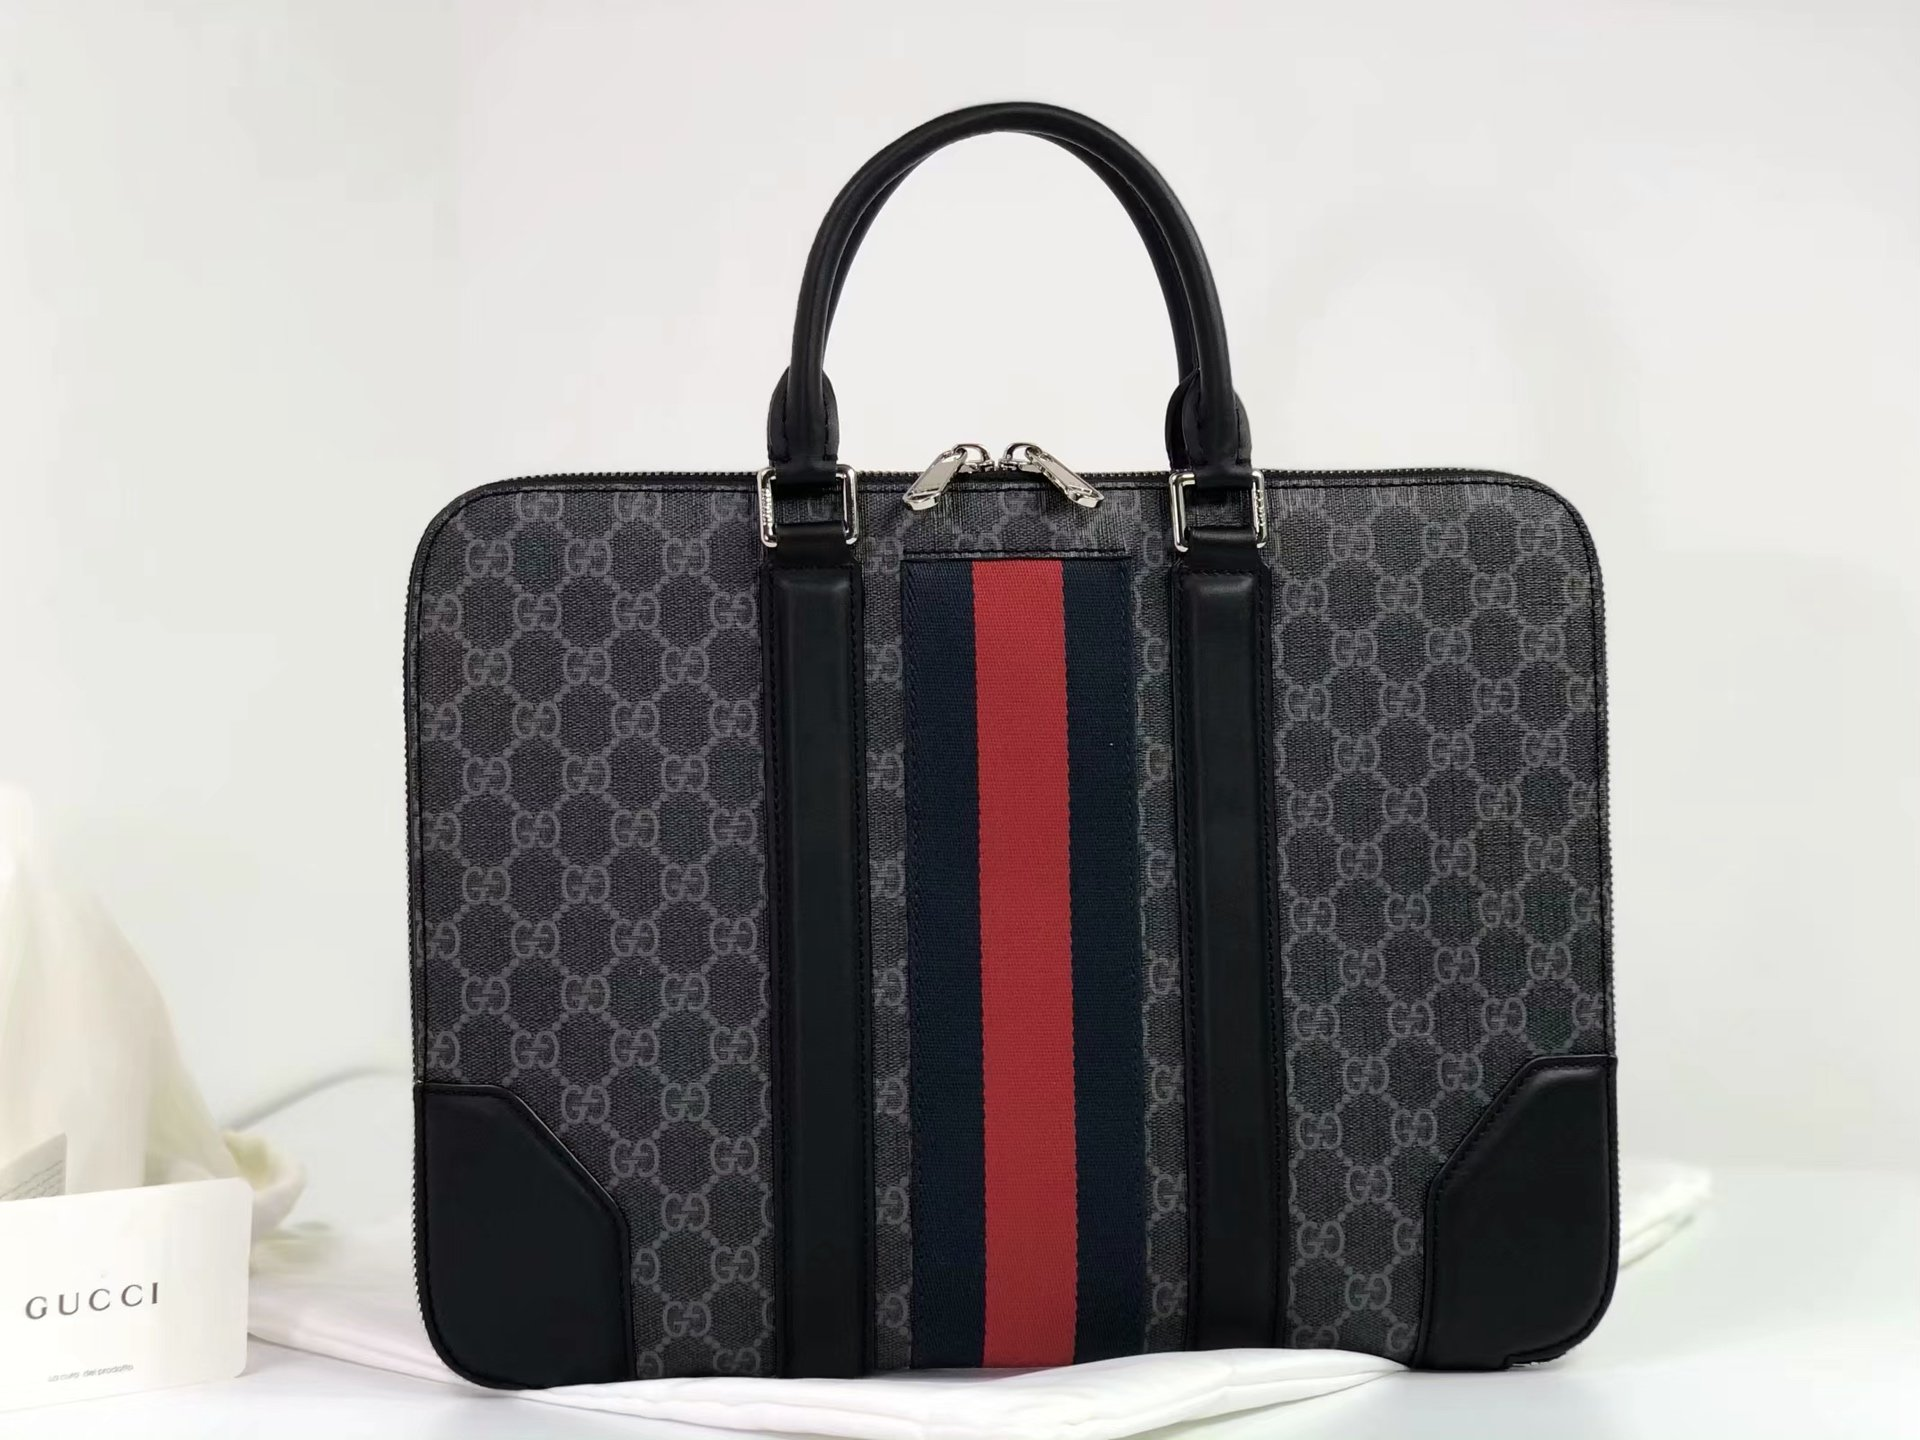 Replica 523604 Gucci Men Briefcase GG Supreme Canvas in black Grey Combination